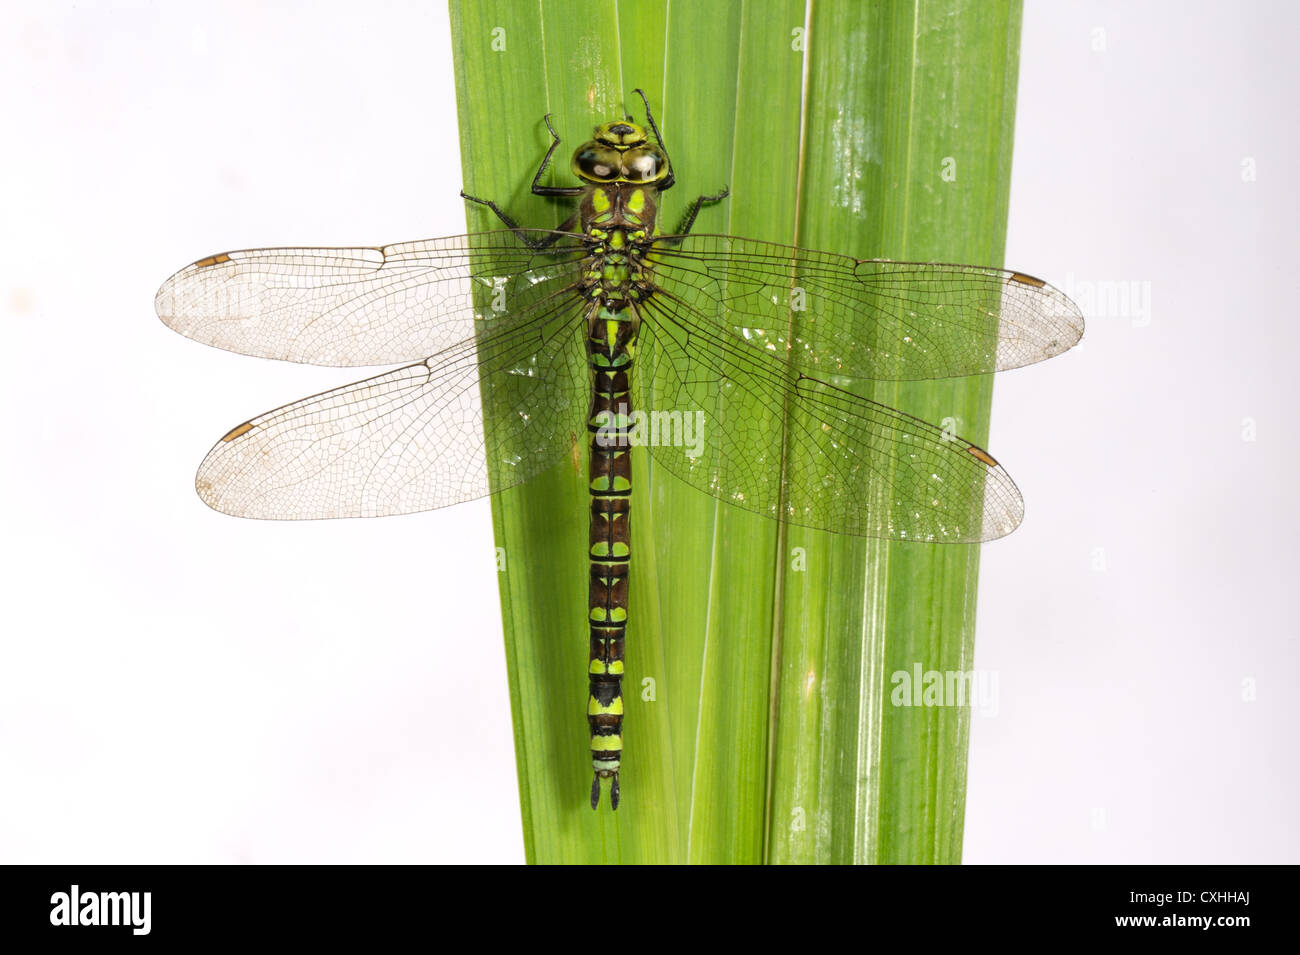 Southern hawker dragonfly Aeshna cyanea on an iris leaf - Stock Image